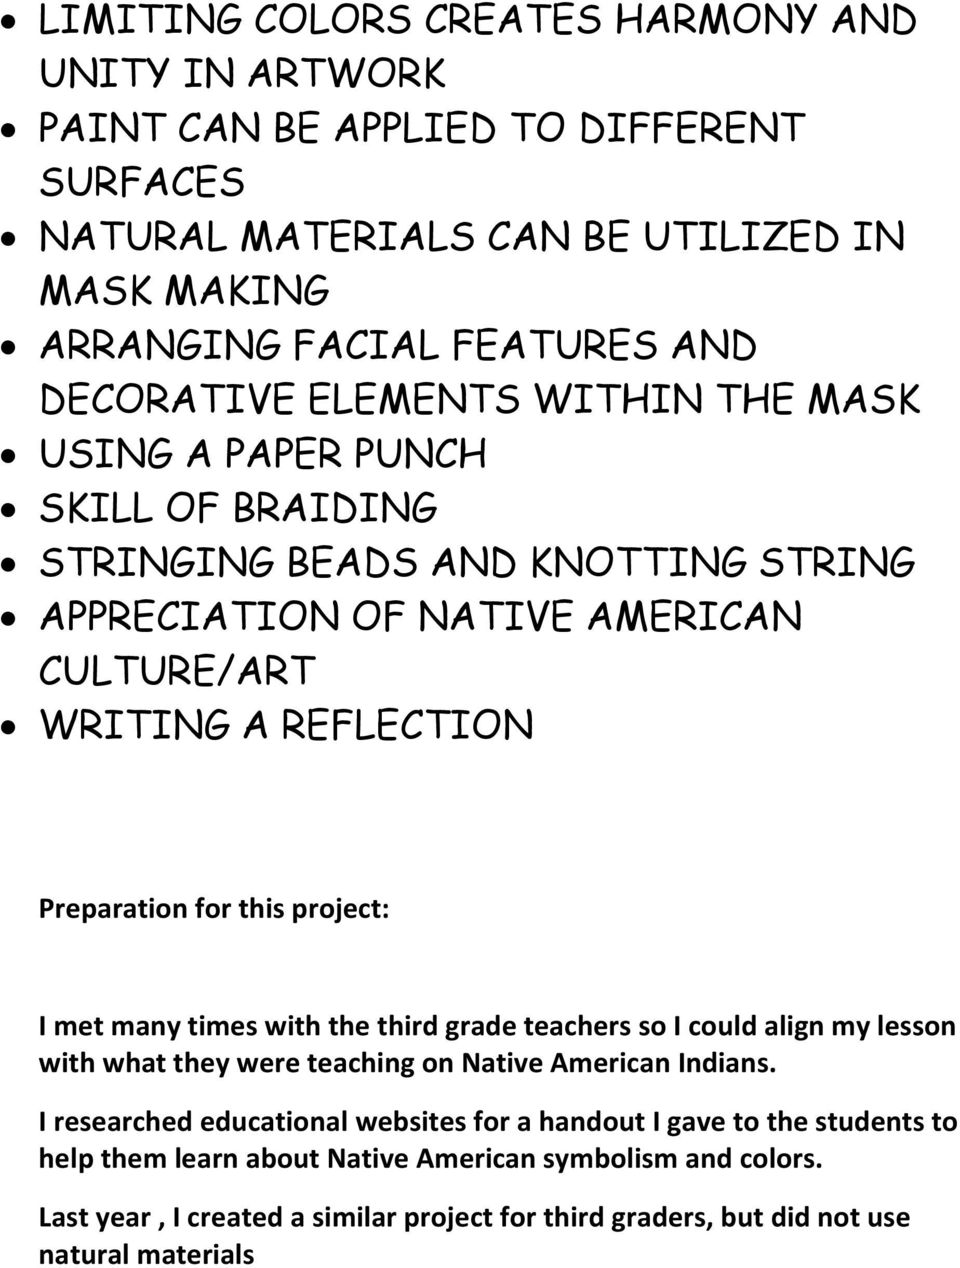 Preparation for this project: I met many times with the third grade teachers so I could align my lesson with what they were teaching on Native American Indians.